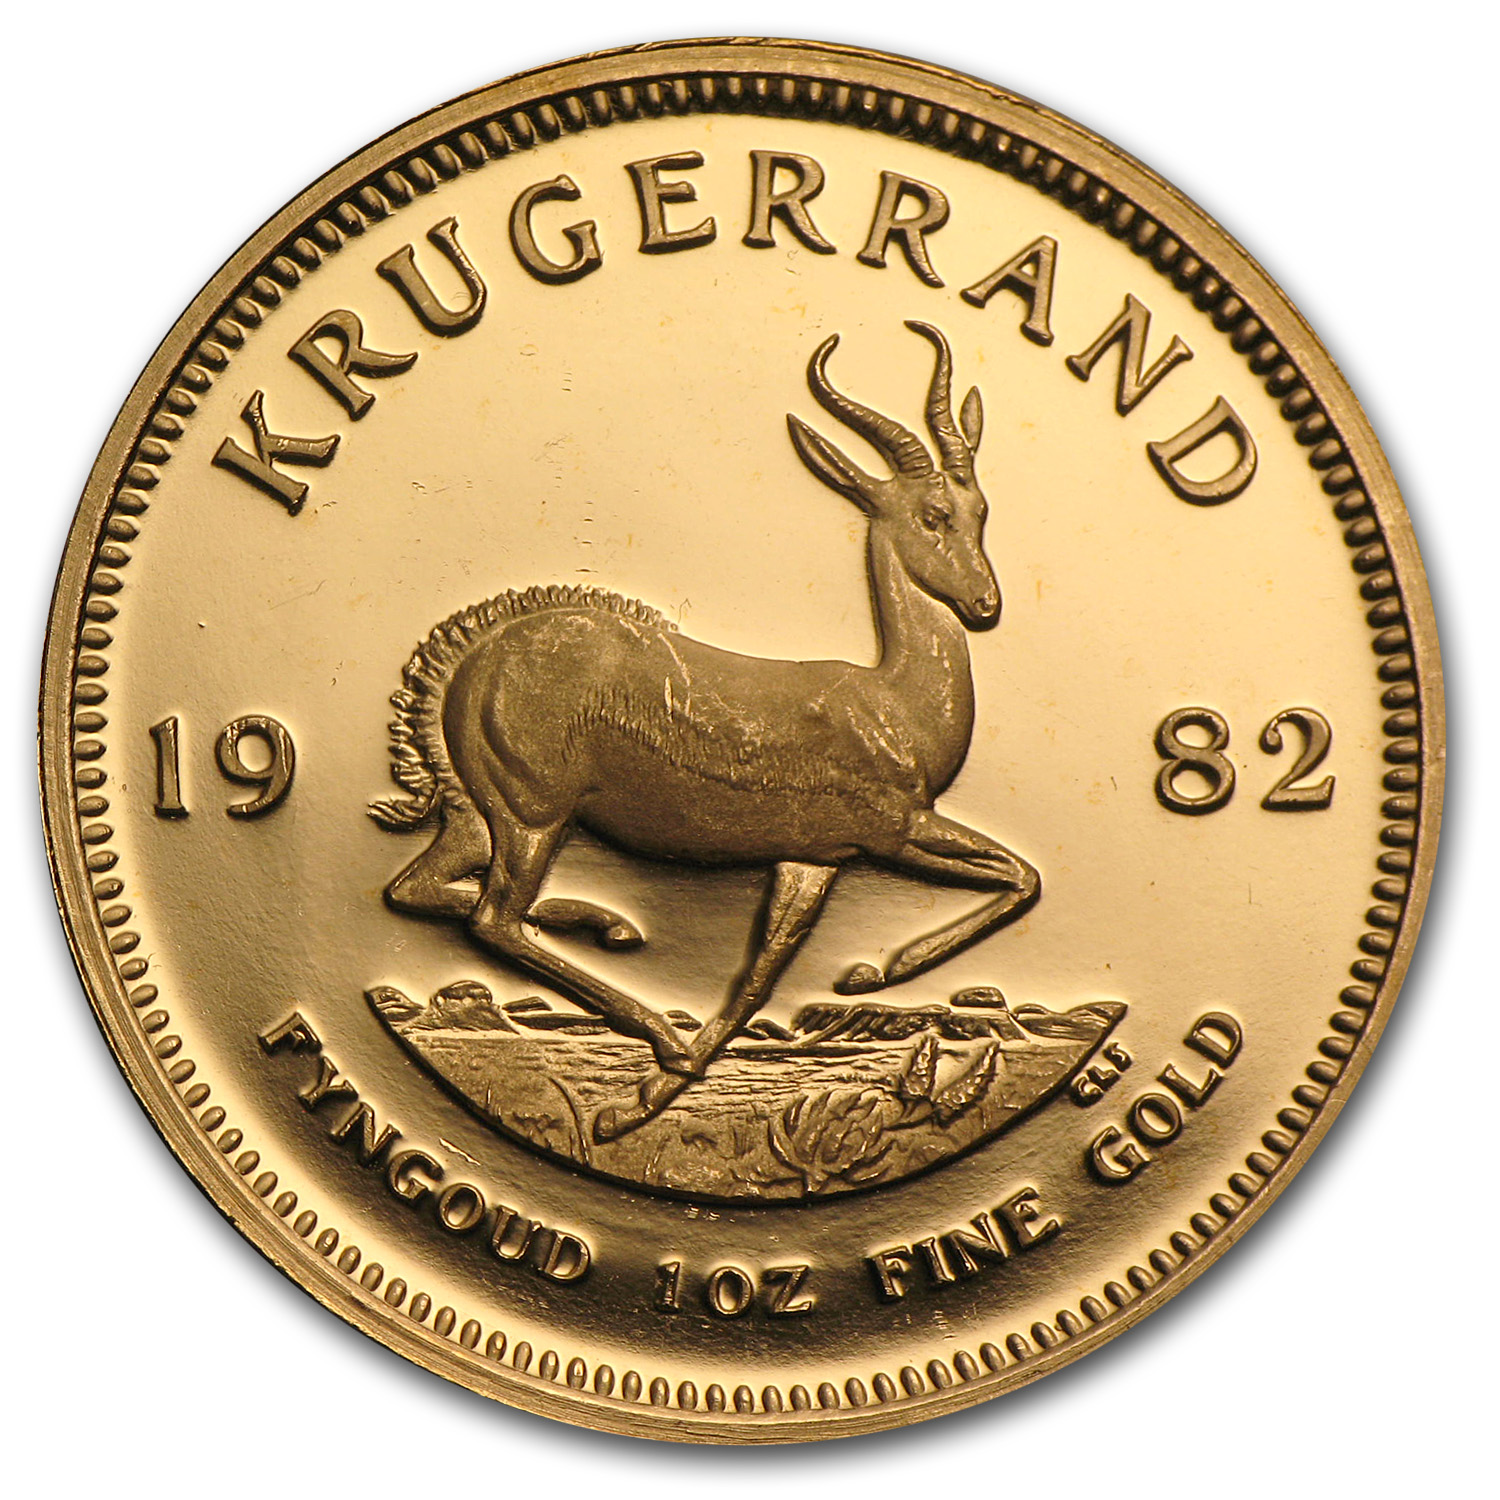 1982 1 oz Gold South African Krugerrand (Proof)